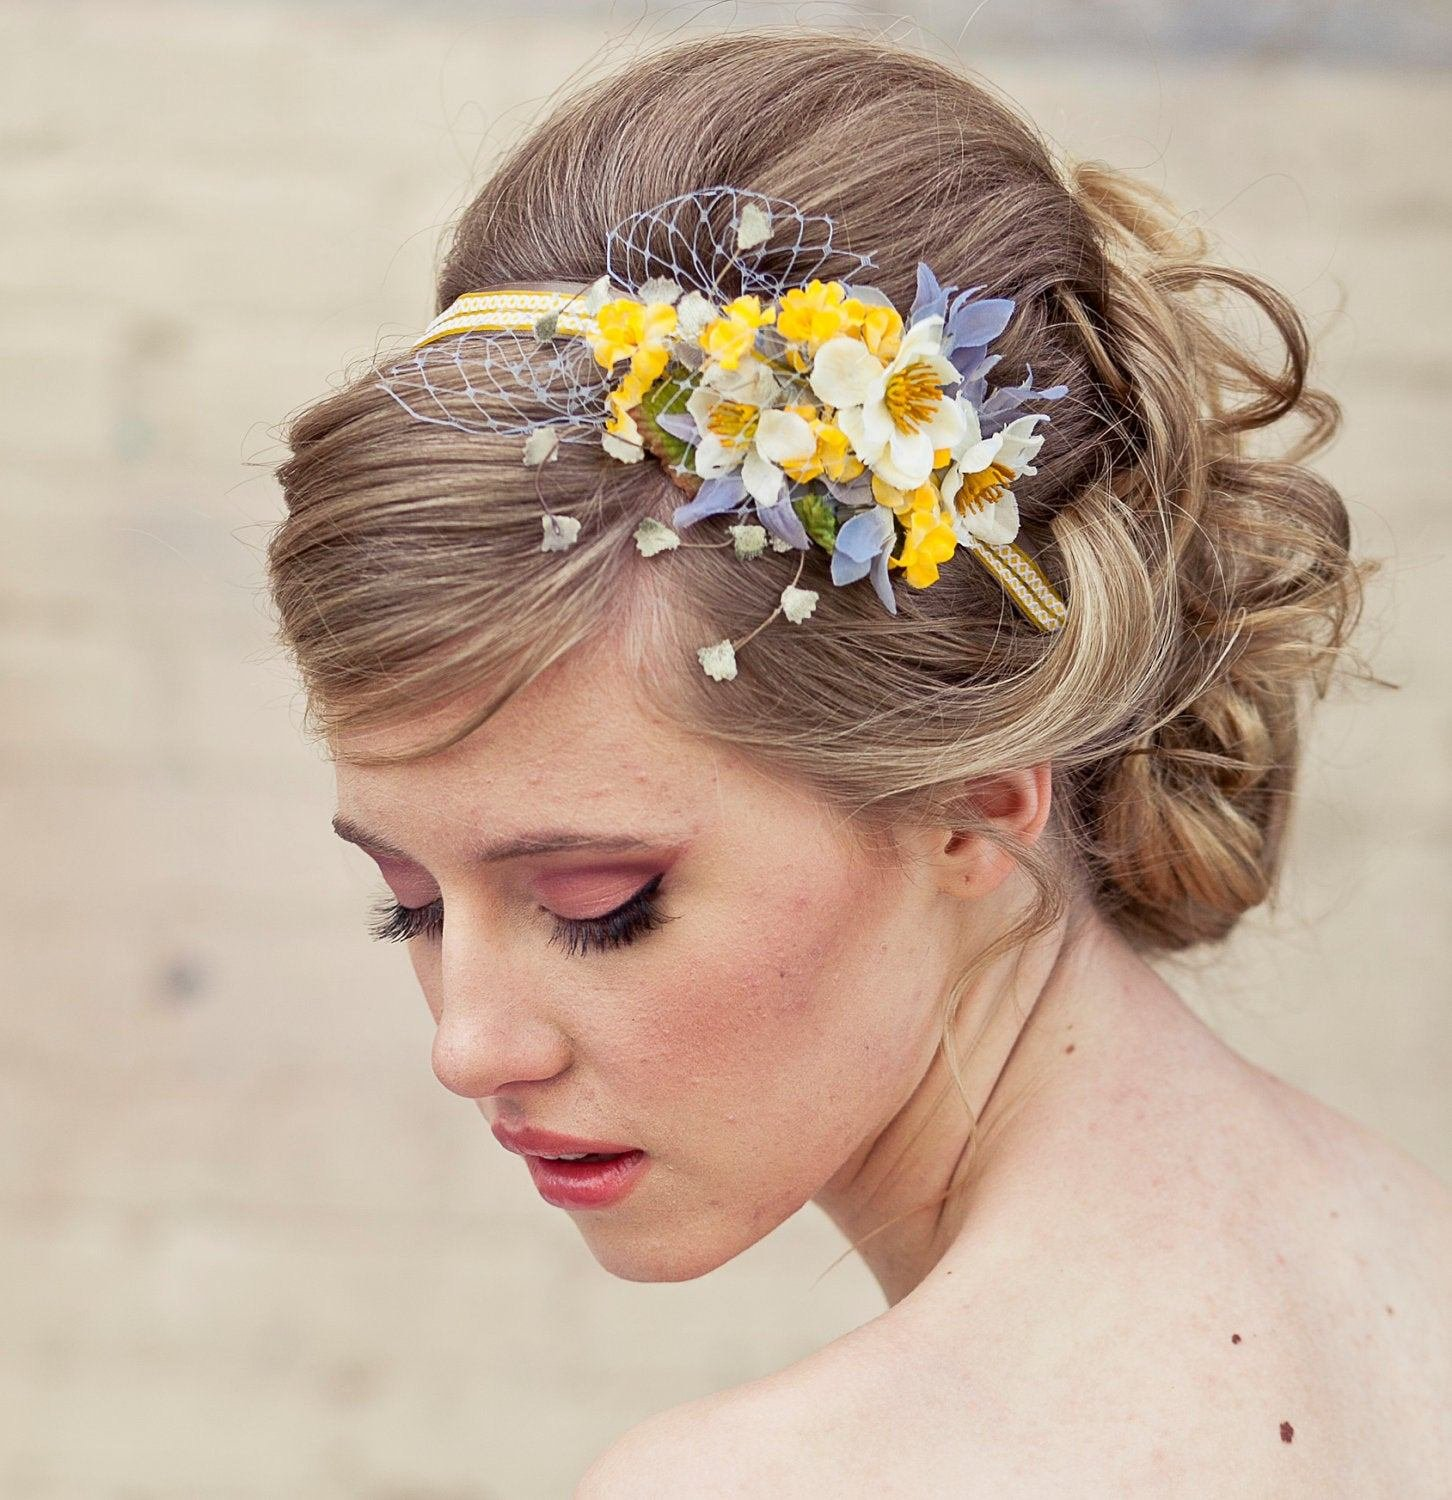 The Best Spring Flowers Headband Headbands For Women And Weddings Pictures Original 1024 x 768